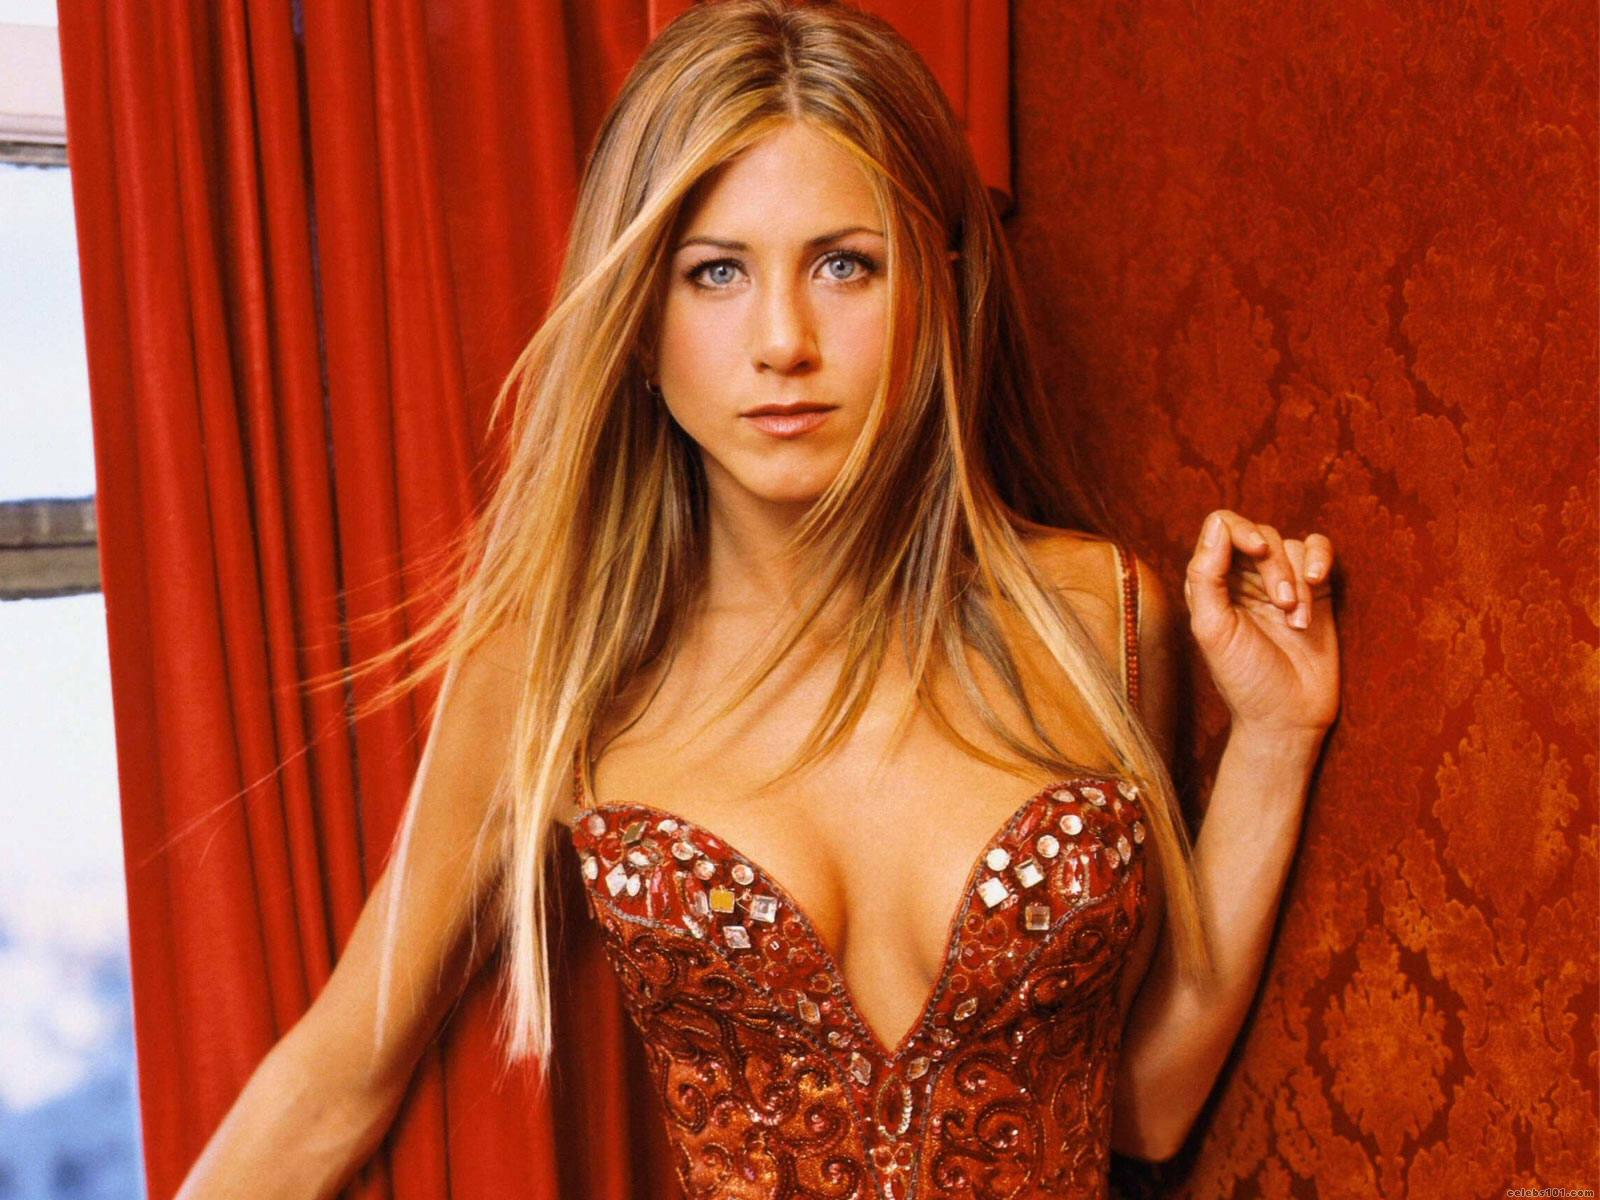 http://2.bp.blogspot.com/_UtNW1JfsC-M/TBQASLWPtHI/AAAAAAAABZM/dbs2l7BuiE4/s1600/Jennifer+Aniston+Wallpapers+Hot+Girls+Inn.jpg.jpg